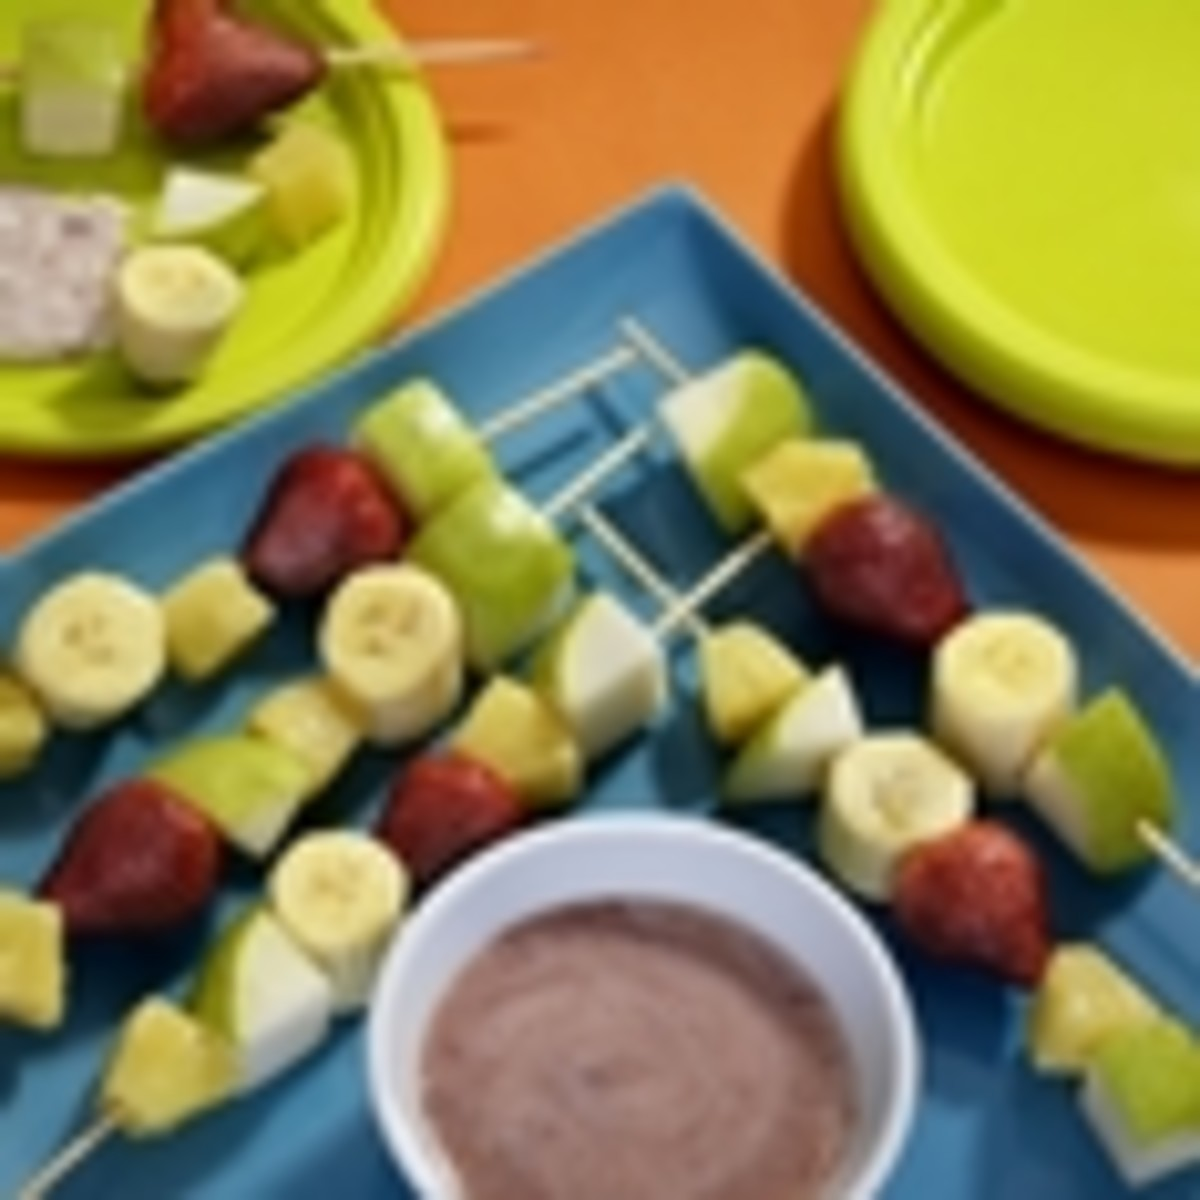 Pear Ka-bobs with Strawberry Dipping Sauce